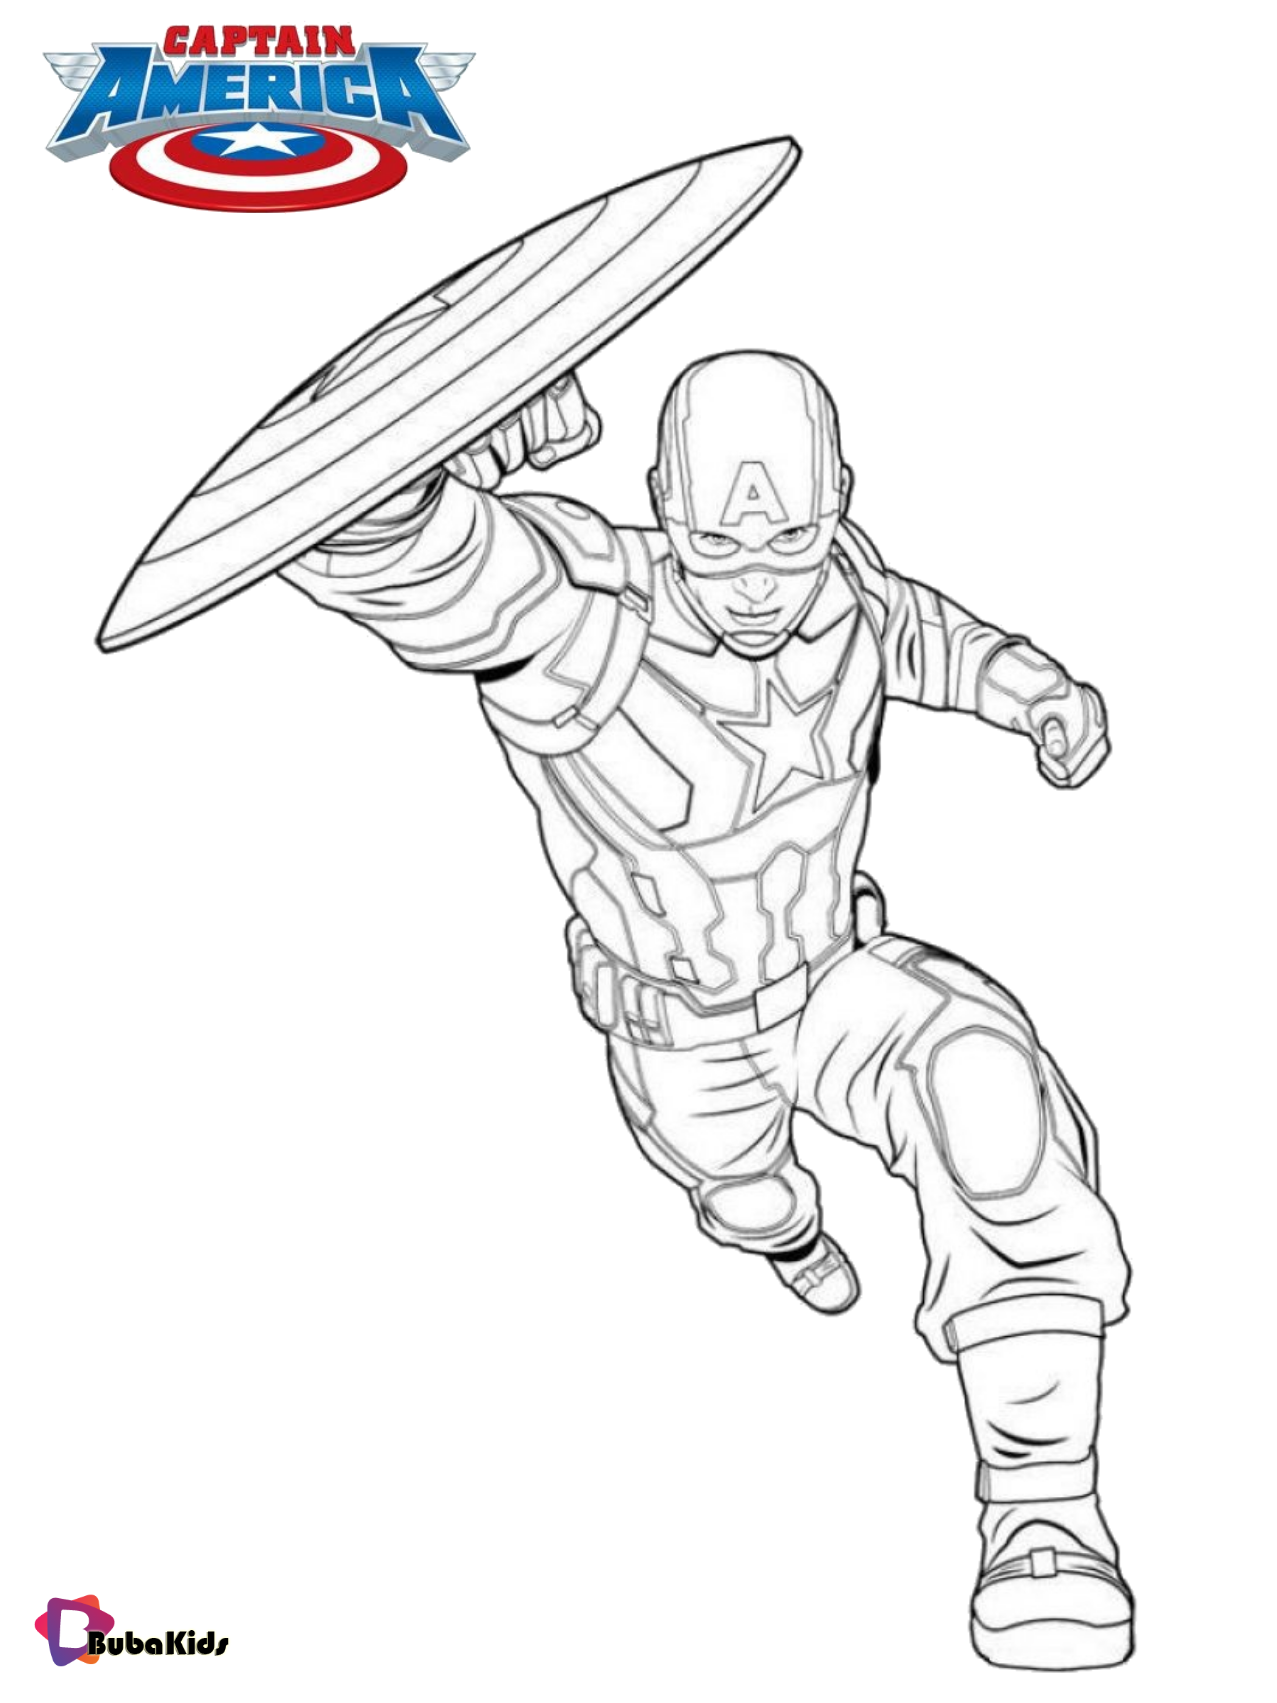 Pin By Douglas Leandro On Personajes De Marvel In 2020 Captain America Coloring Pages Avengers Coloring Pages Avengers Coloring